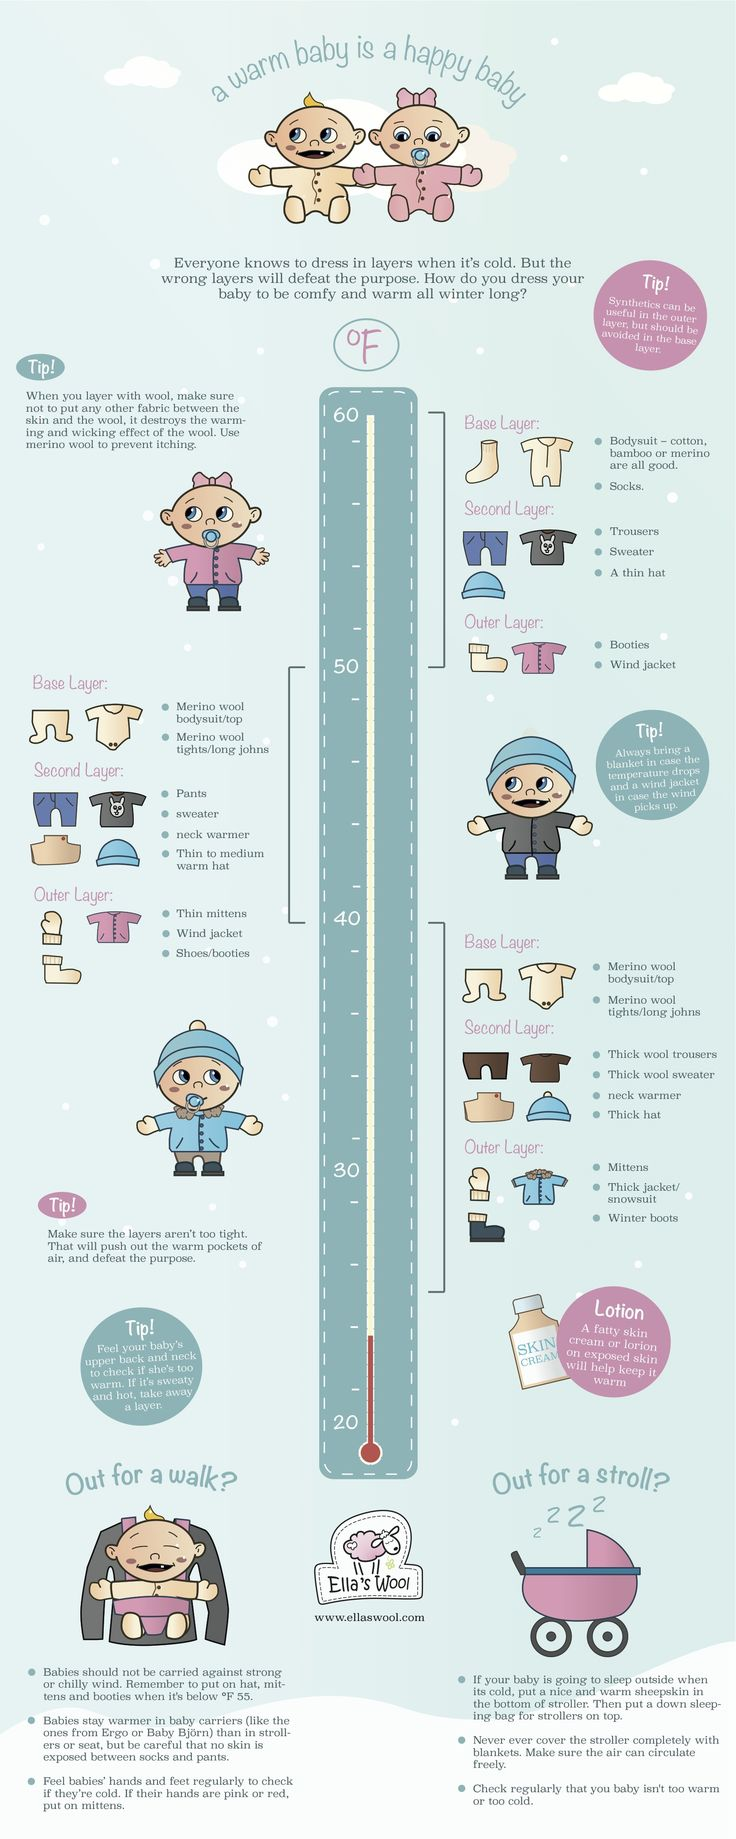 Kids need their energy for growing! Please dress them warm en comfy. Ella's Wool — How to dress your baby for cold weather (infographic)